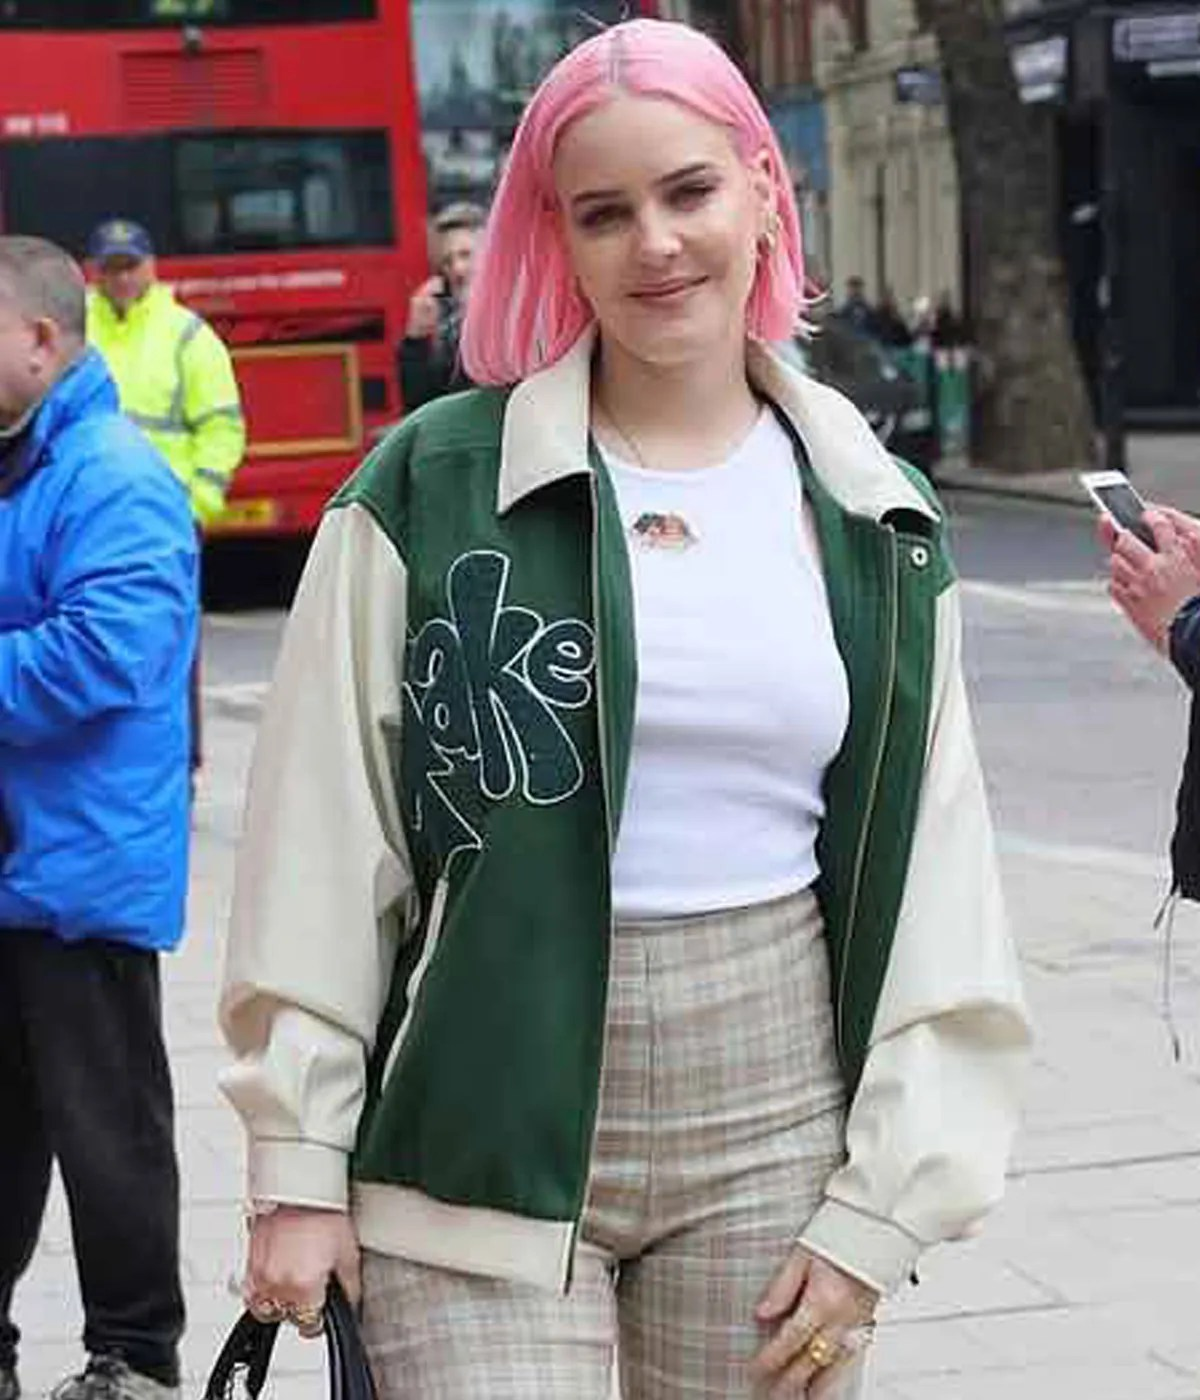 anne-marie-our-song-jacket